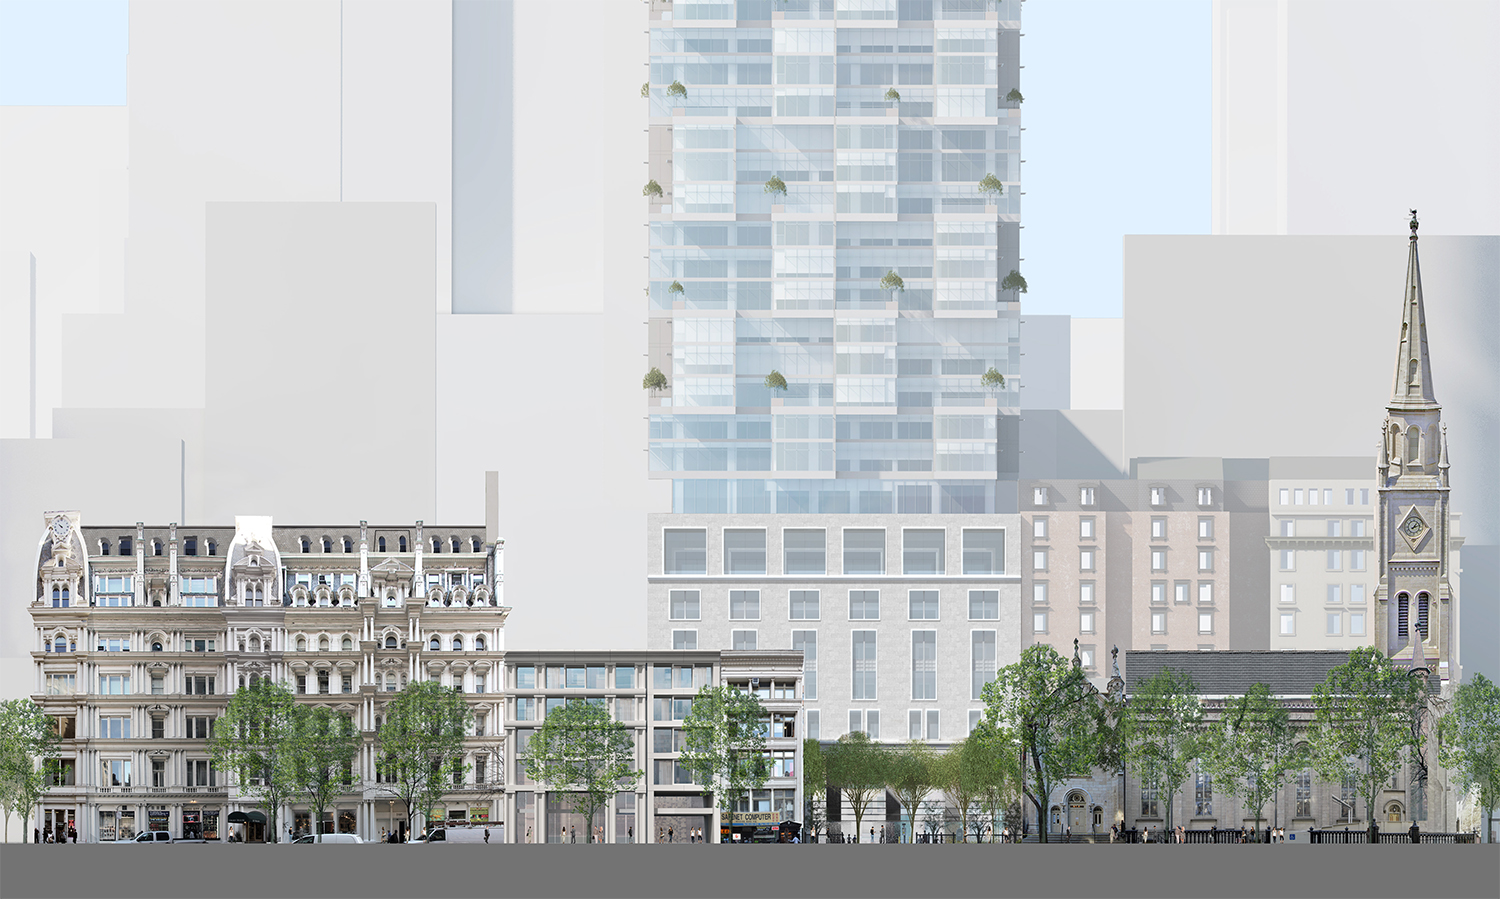 Proposed conditions on 29th Street.